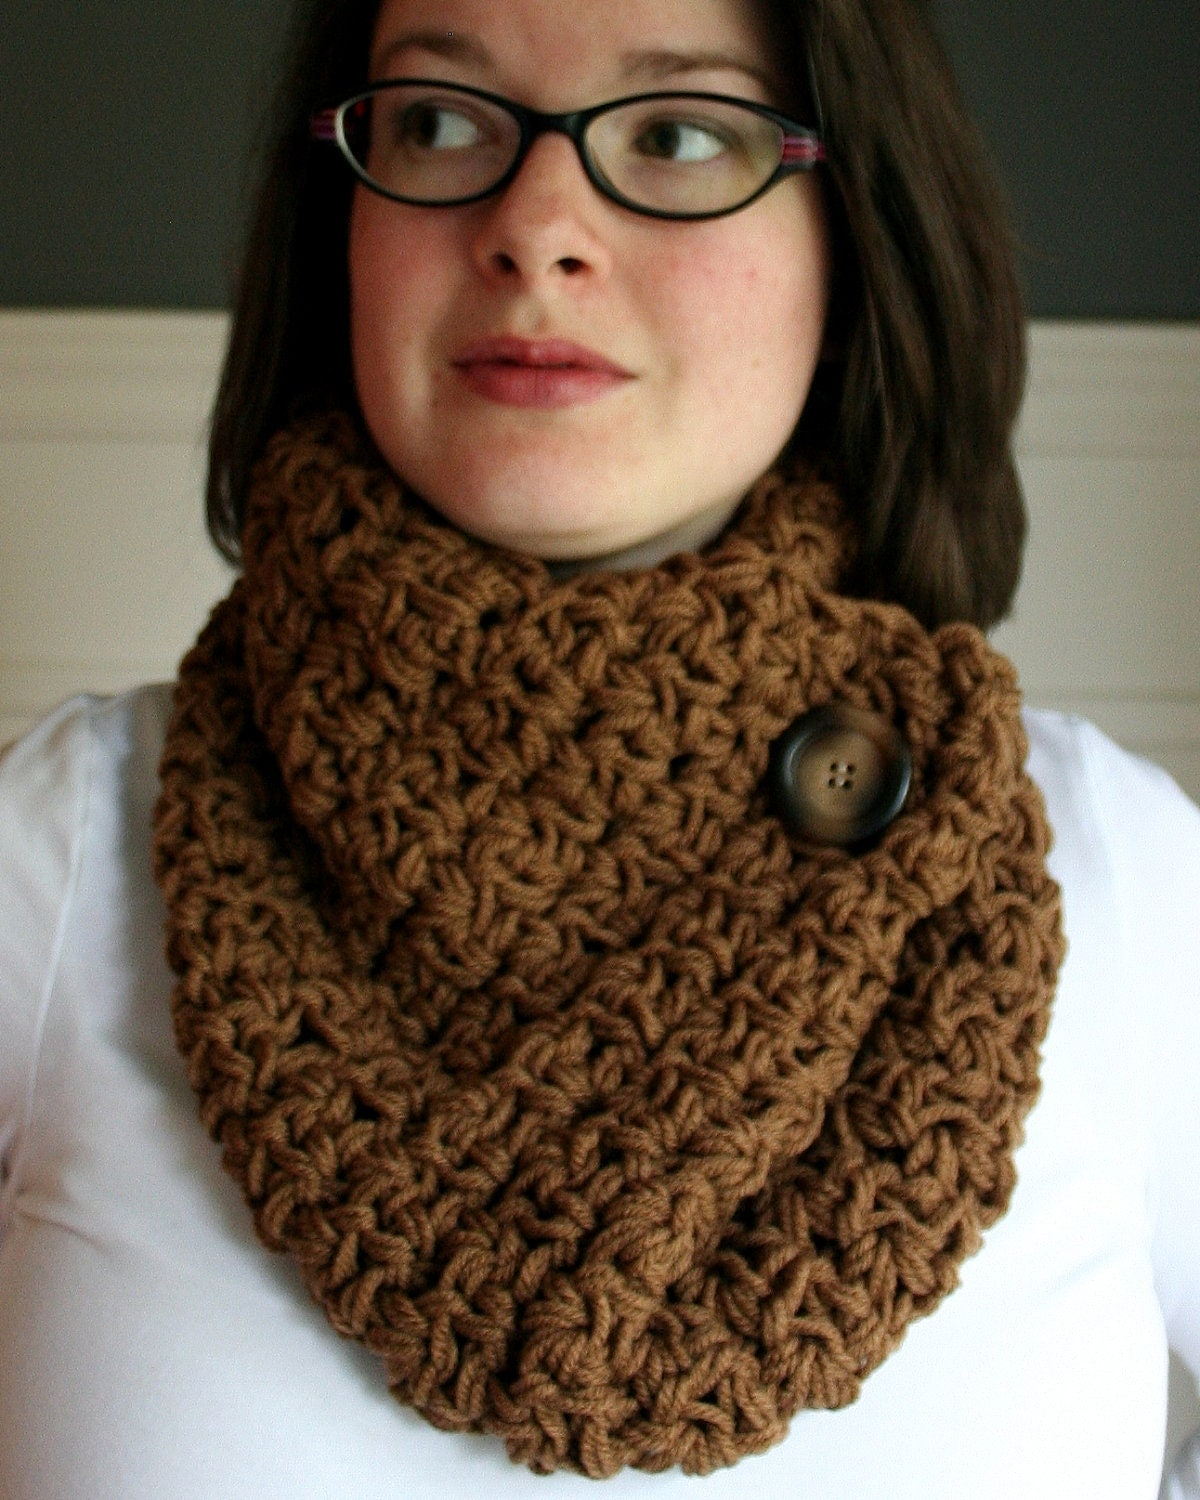 Crochet Patterns Neck Scarves : All In One Crochet Cowl Neck Hood And Scarf Item By ...